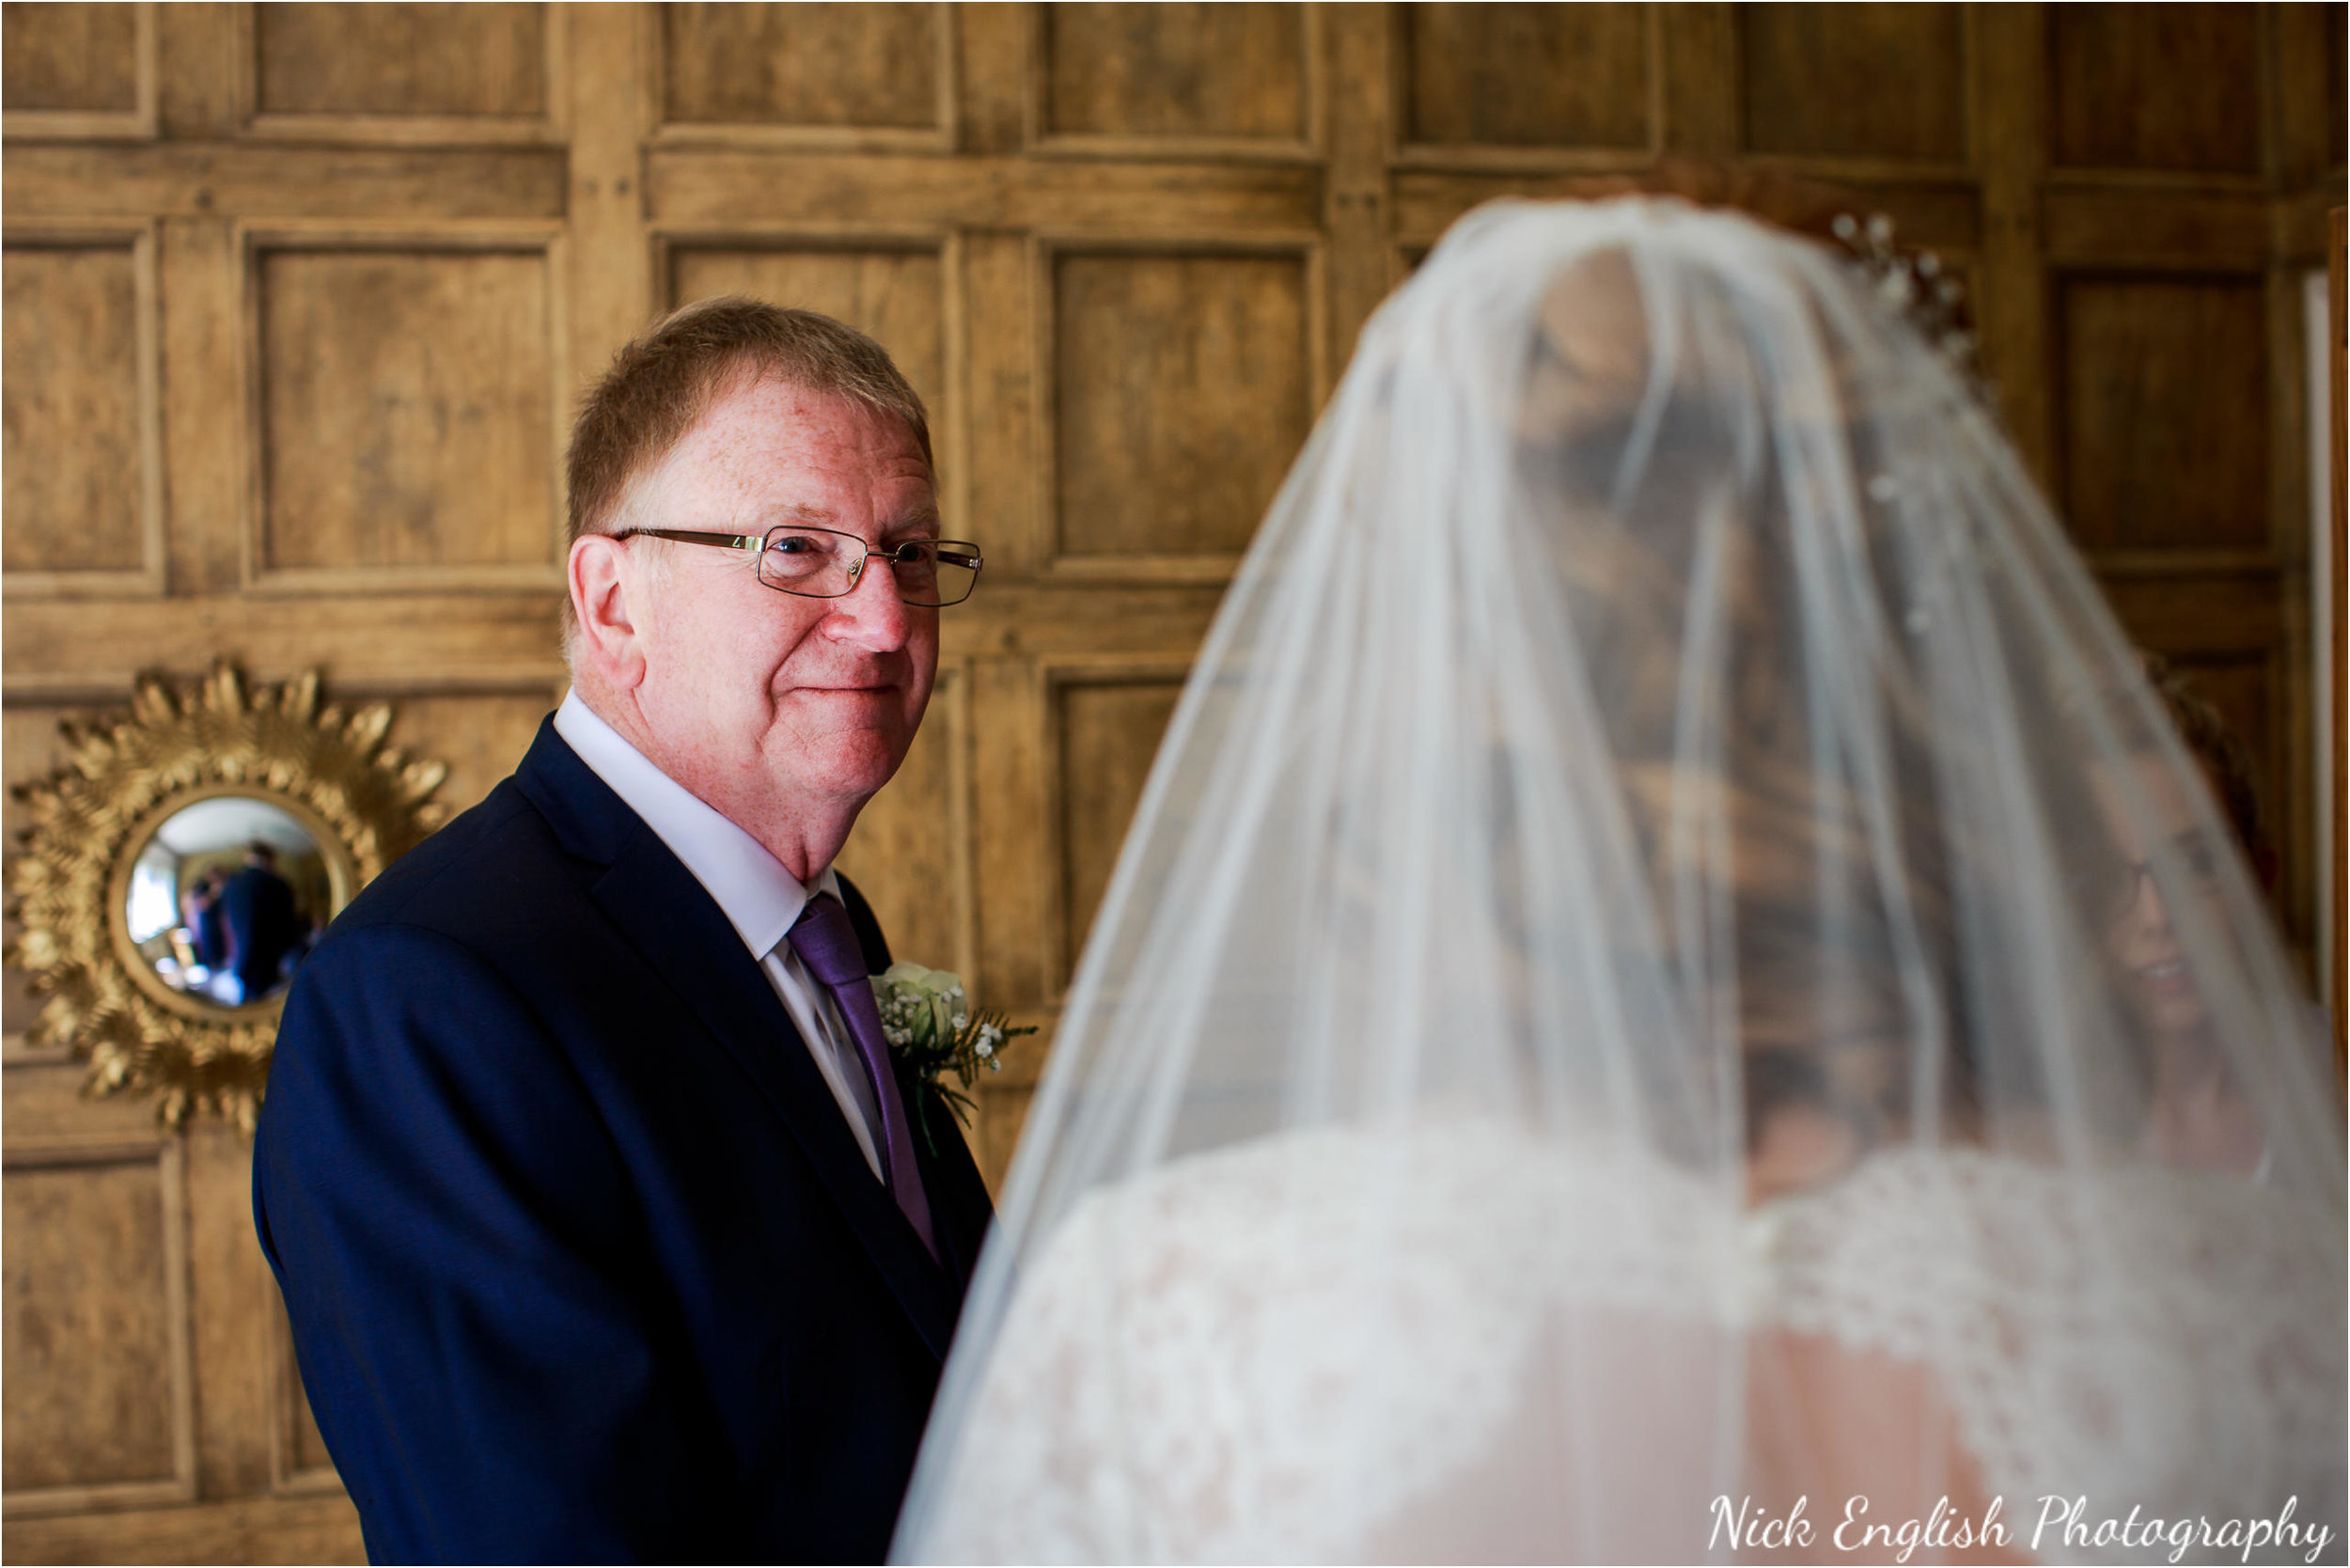 Alison James Wedding Photographs at Eaves Hall West Bradford 69jpg.jpeg